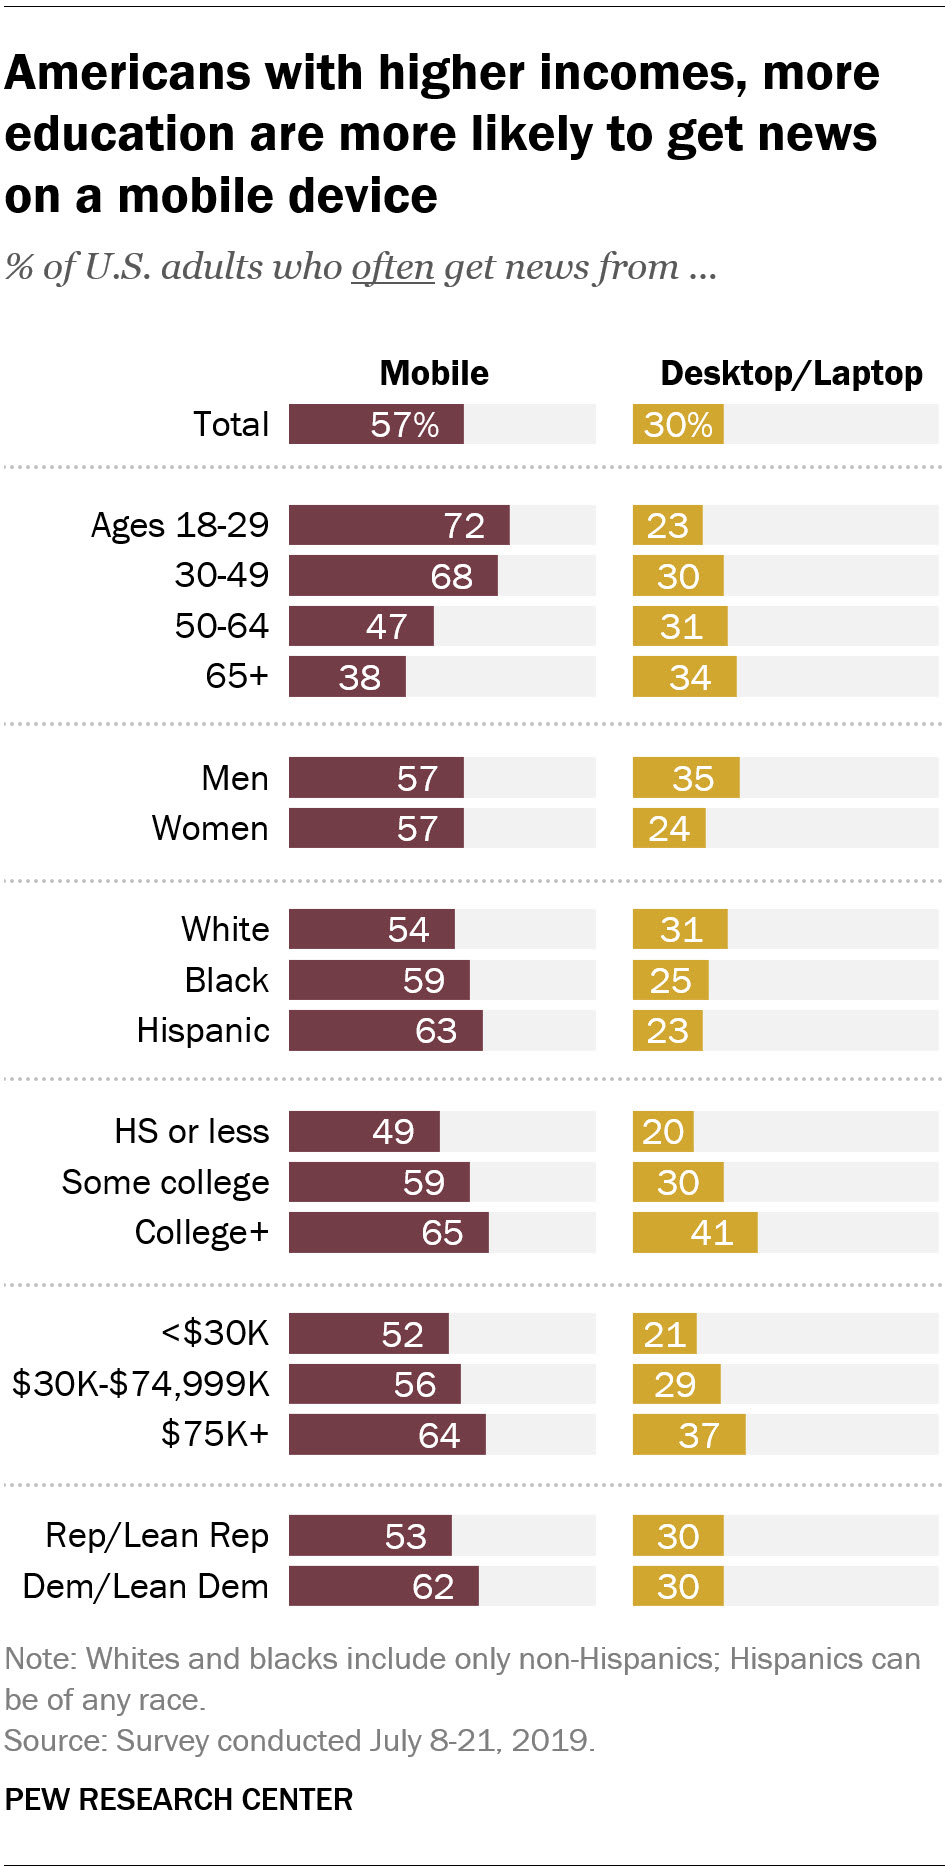 Americans with higher incomes, more education are more likely to get news on a mobile device